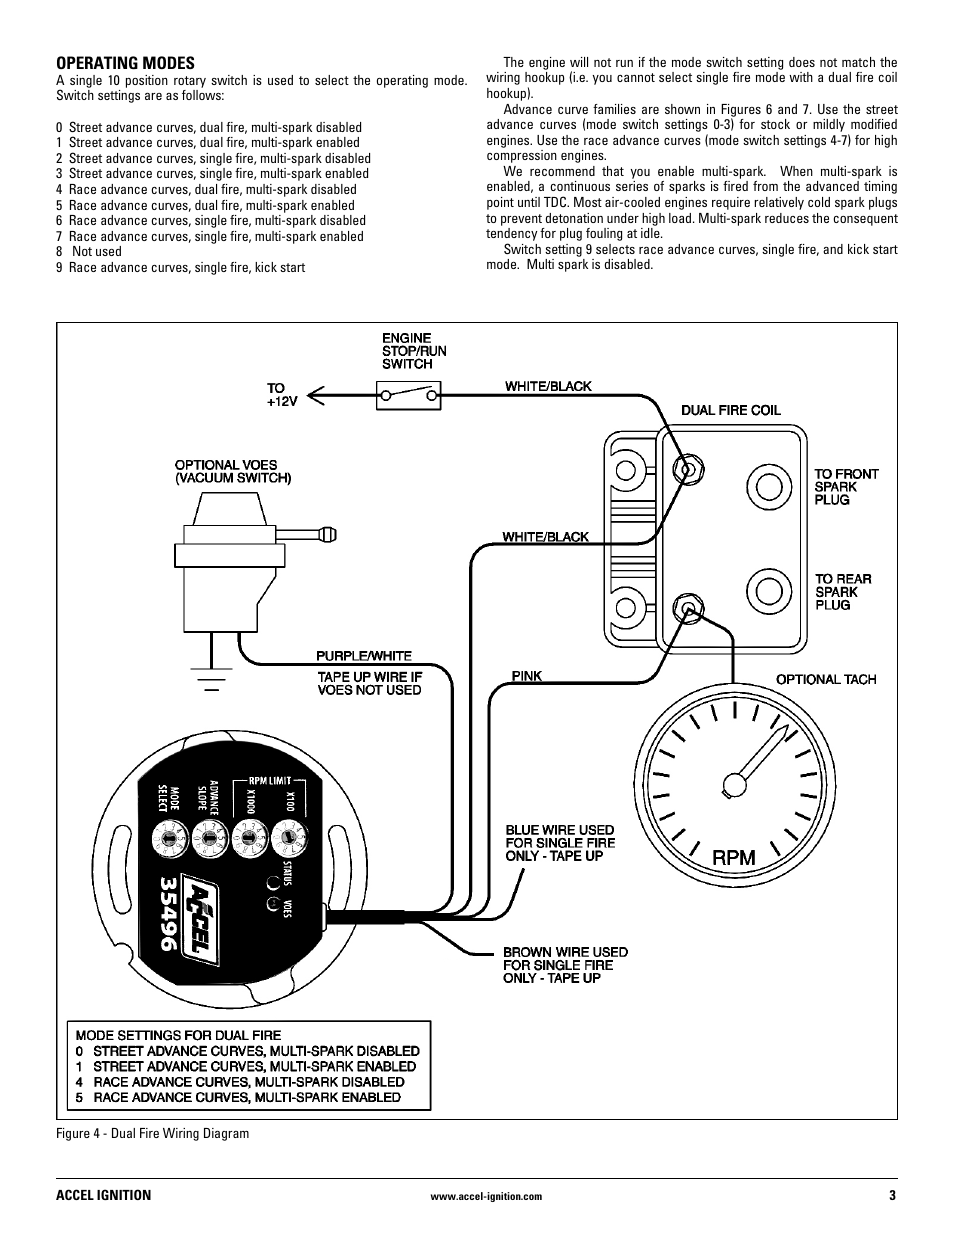 Mallory Ignition Accel Ignition 35496 User Manual